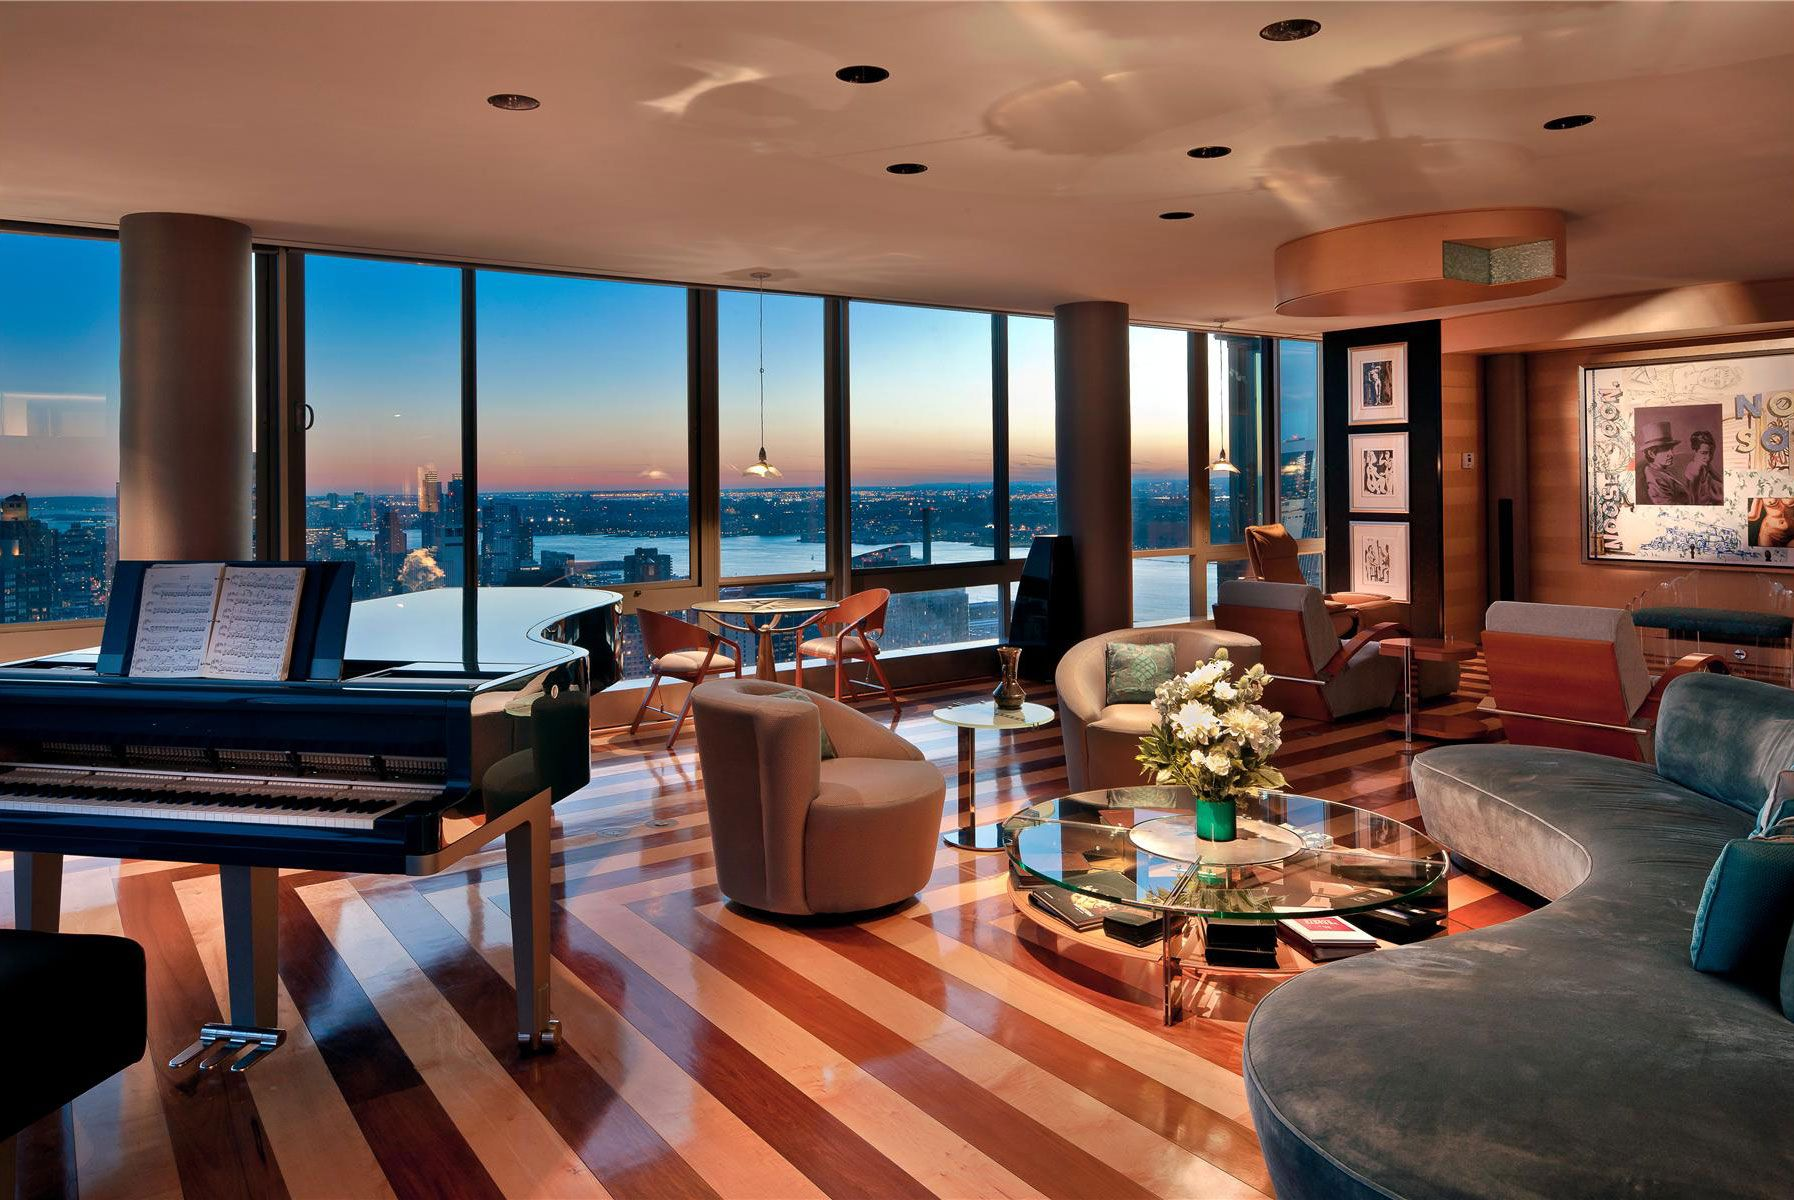 The gartner penthouse for sale in new york city for Penthouse apartment for sale